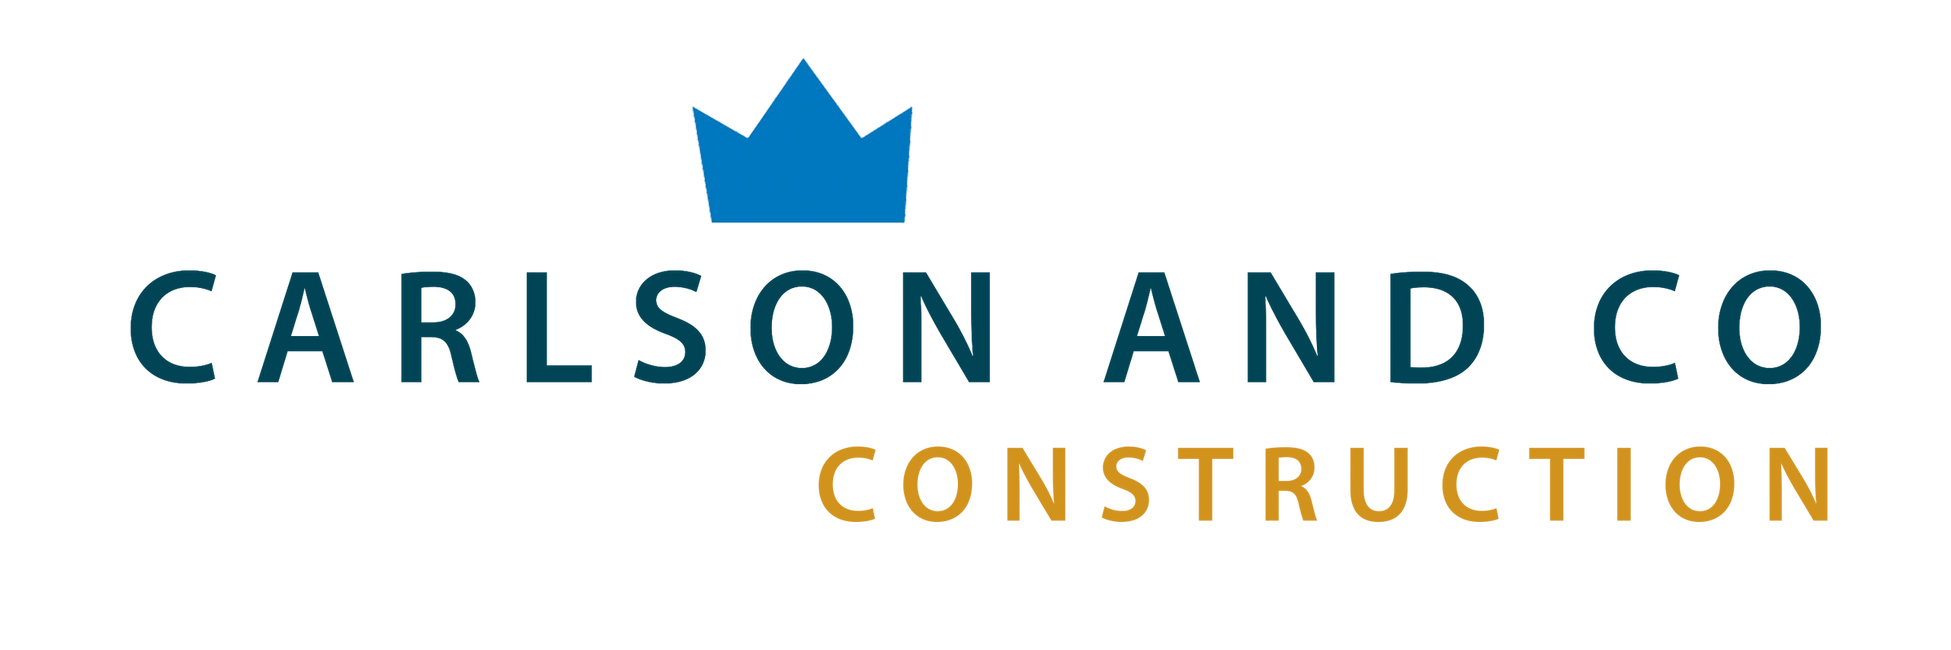 Carlson and co construction